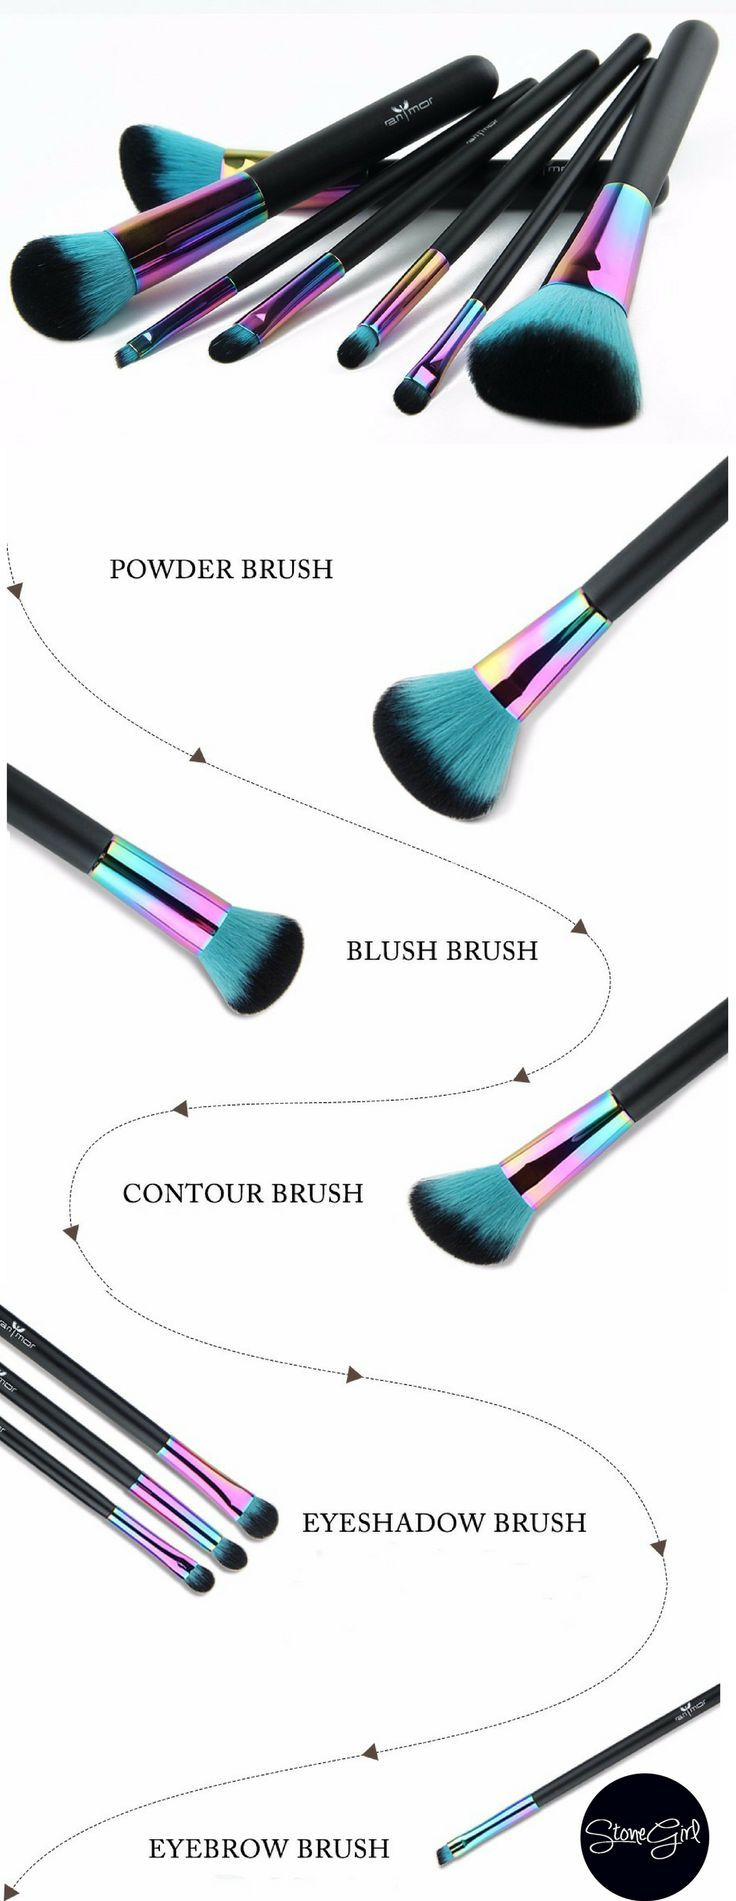 Love these makeup brushes!  Gift idea for any beauty junkie. :)